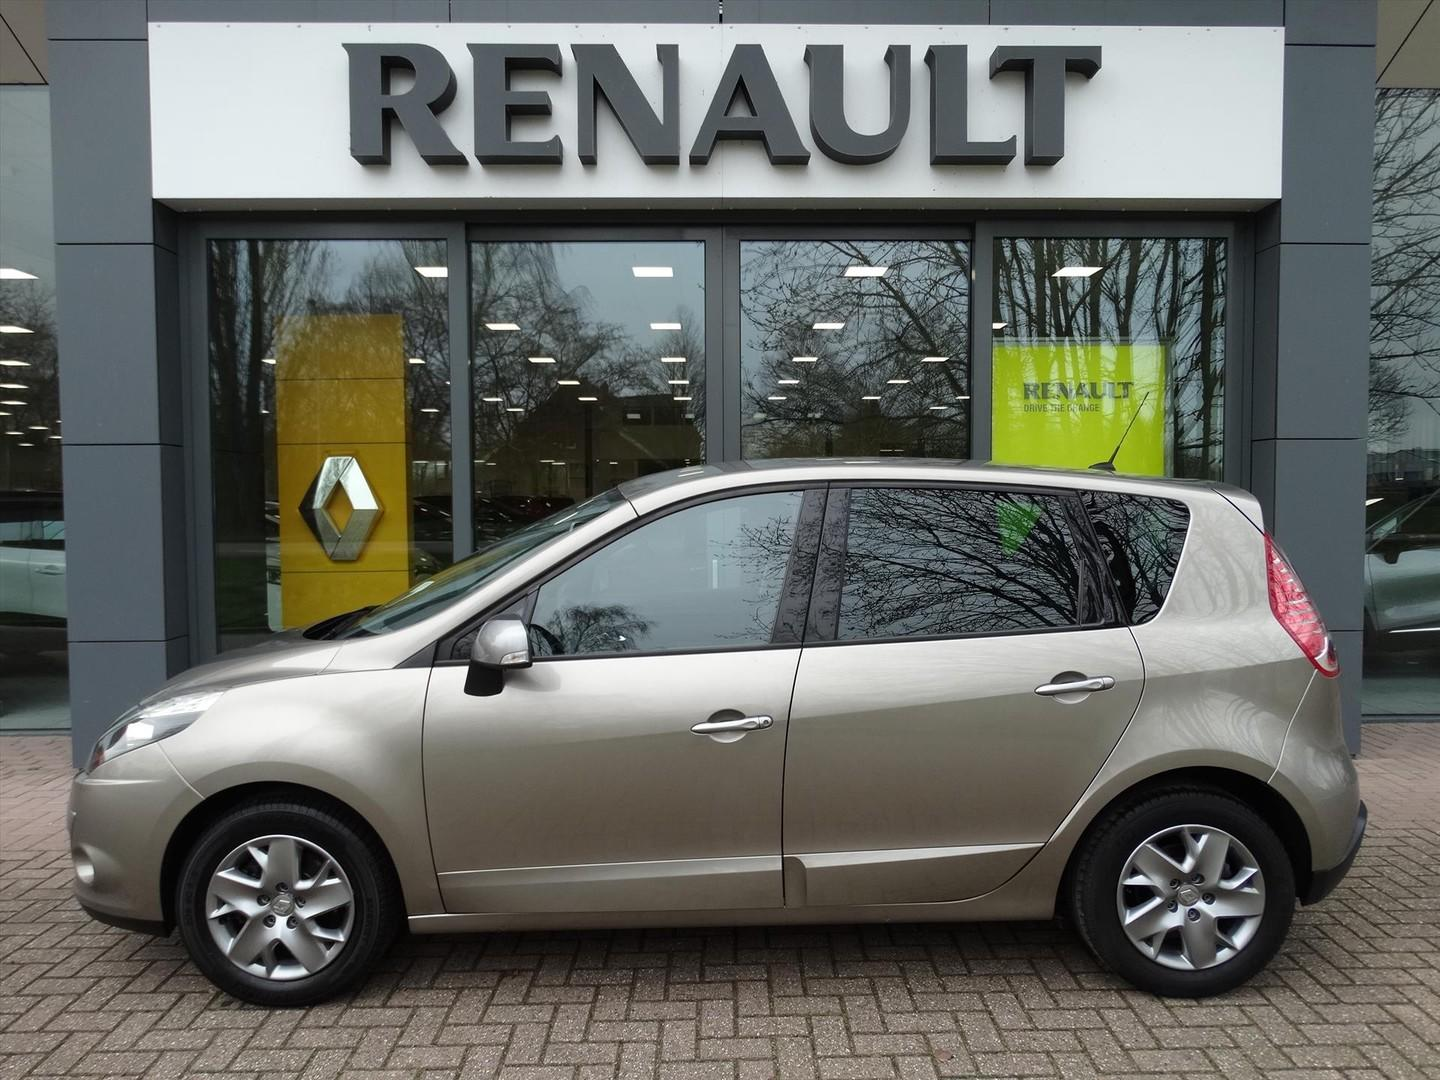 Renault Scénic Iii 1.4 tce 130 pk parisienne